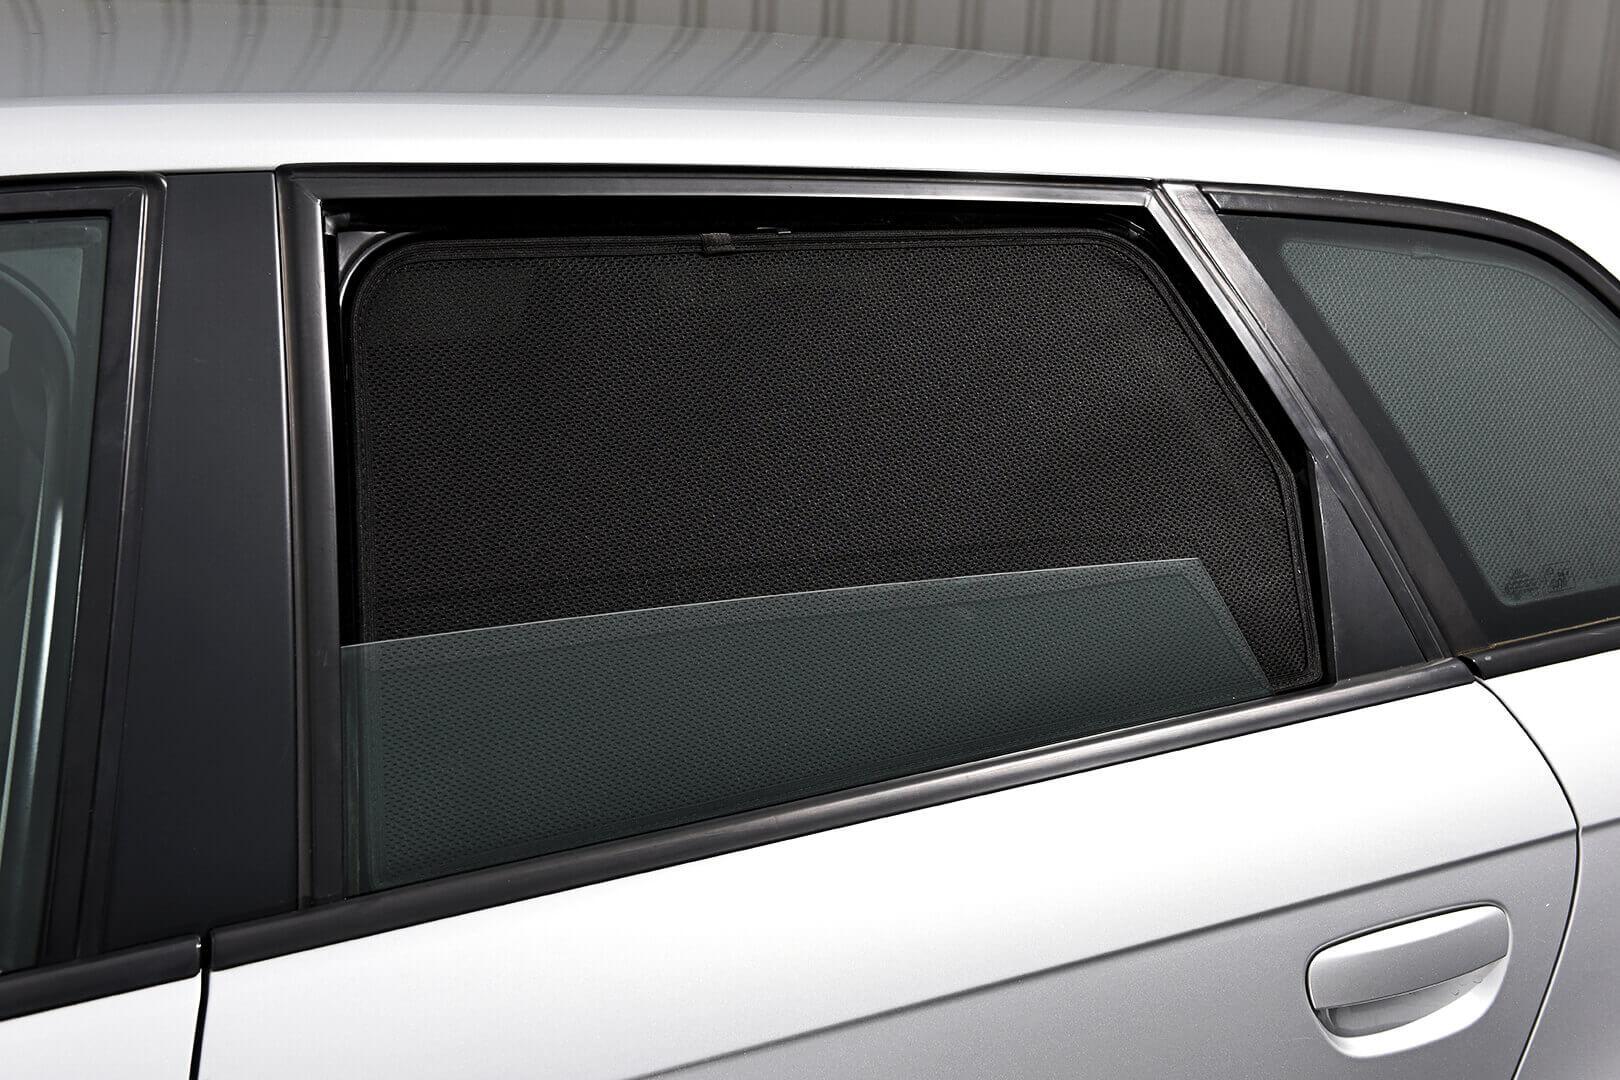 UV Car Shades (Set of 6) A3 5Dr 03-12